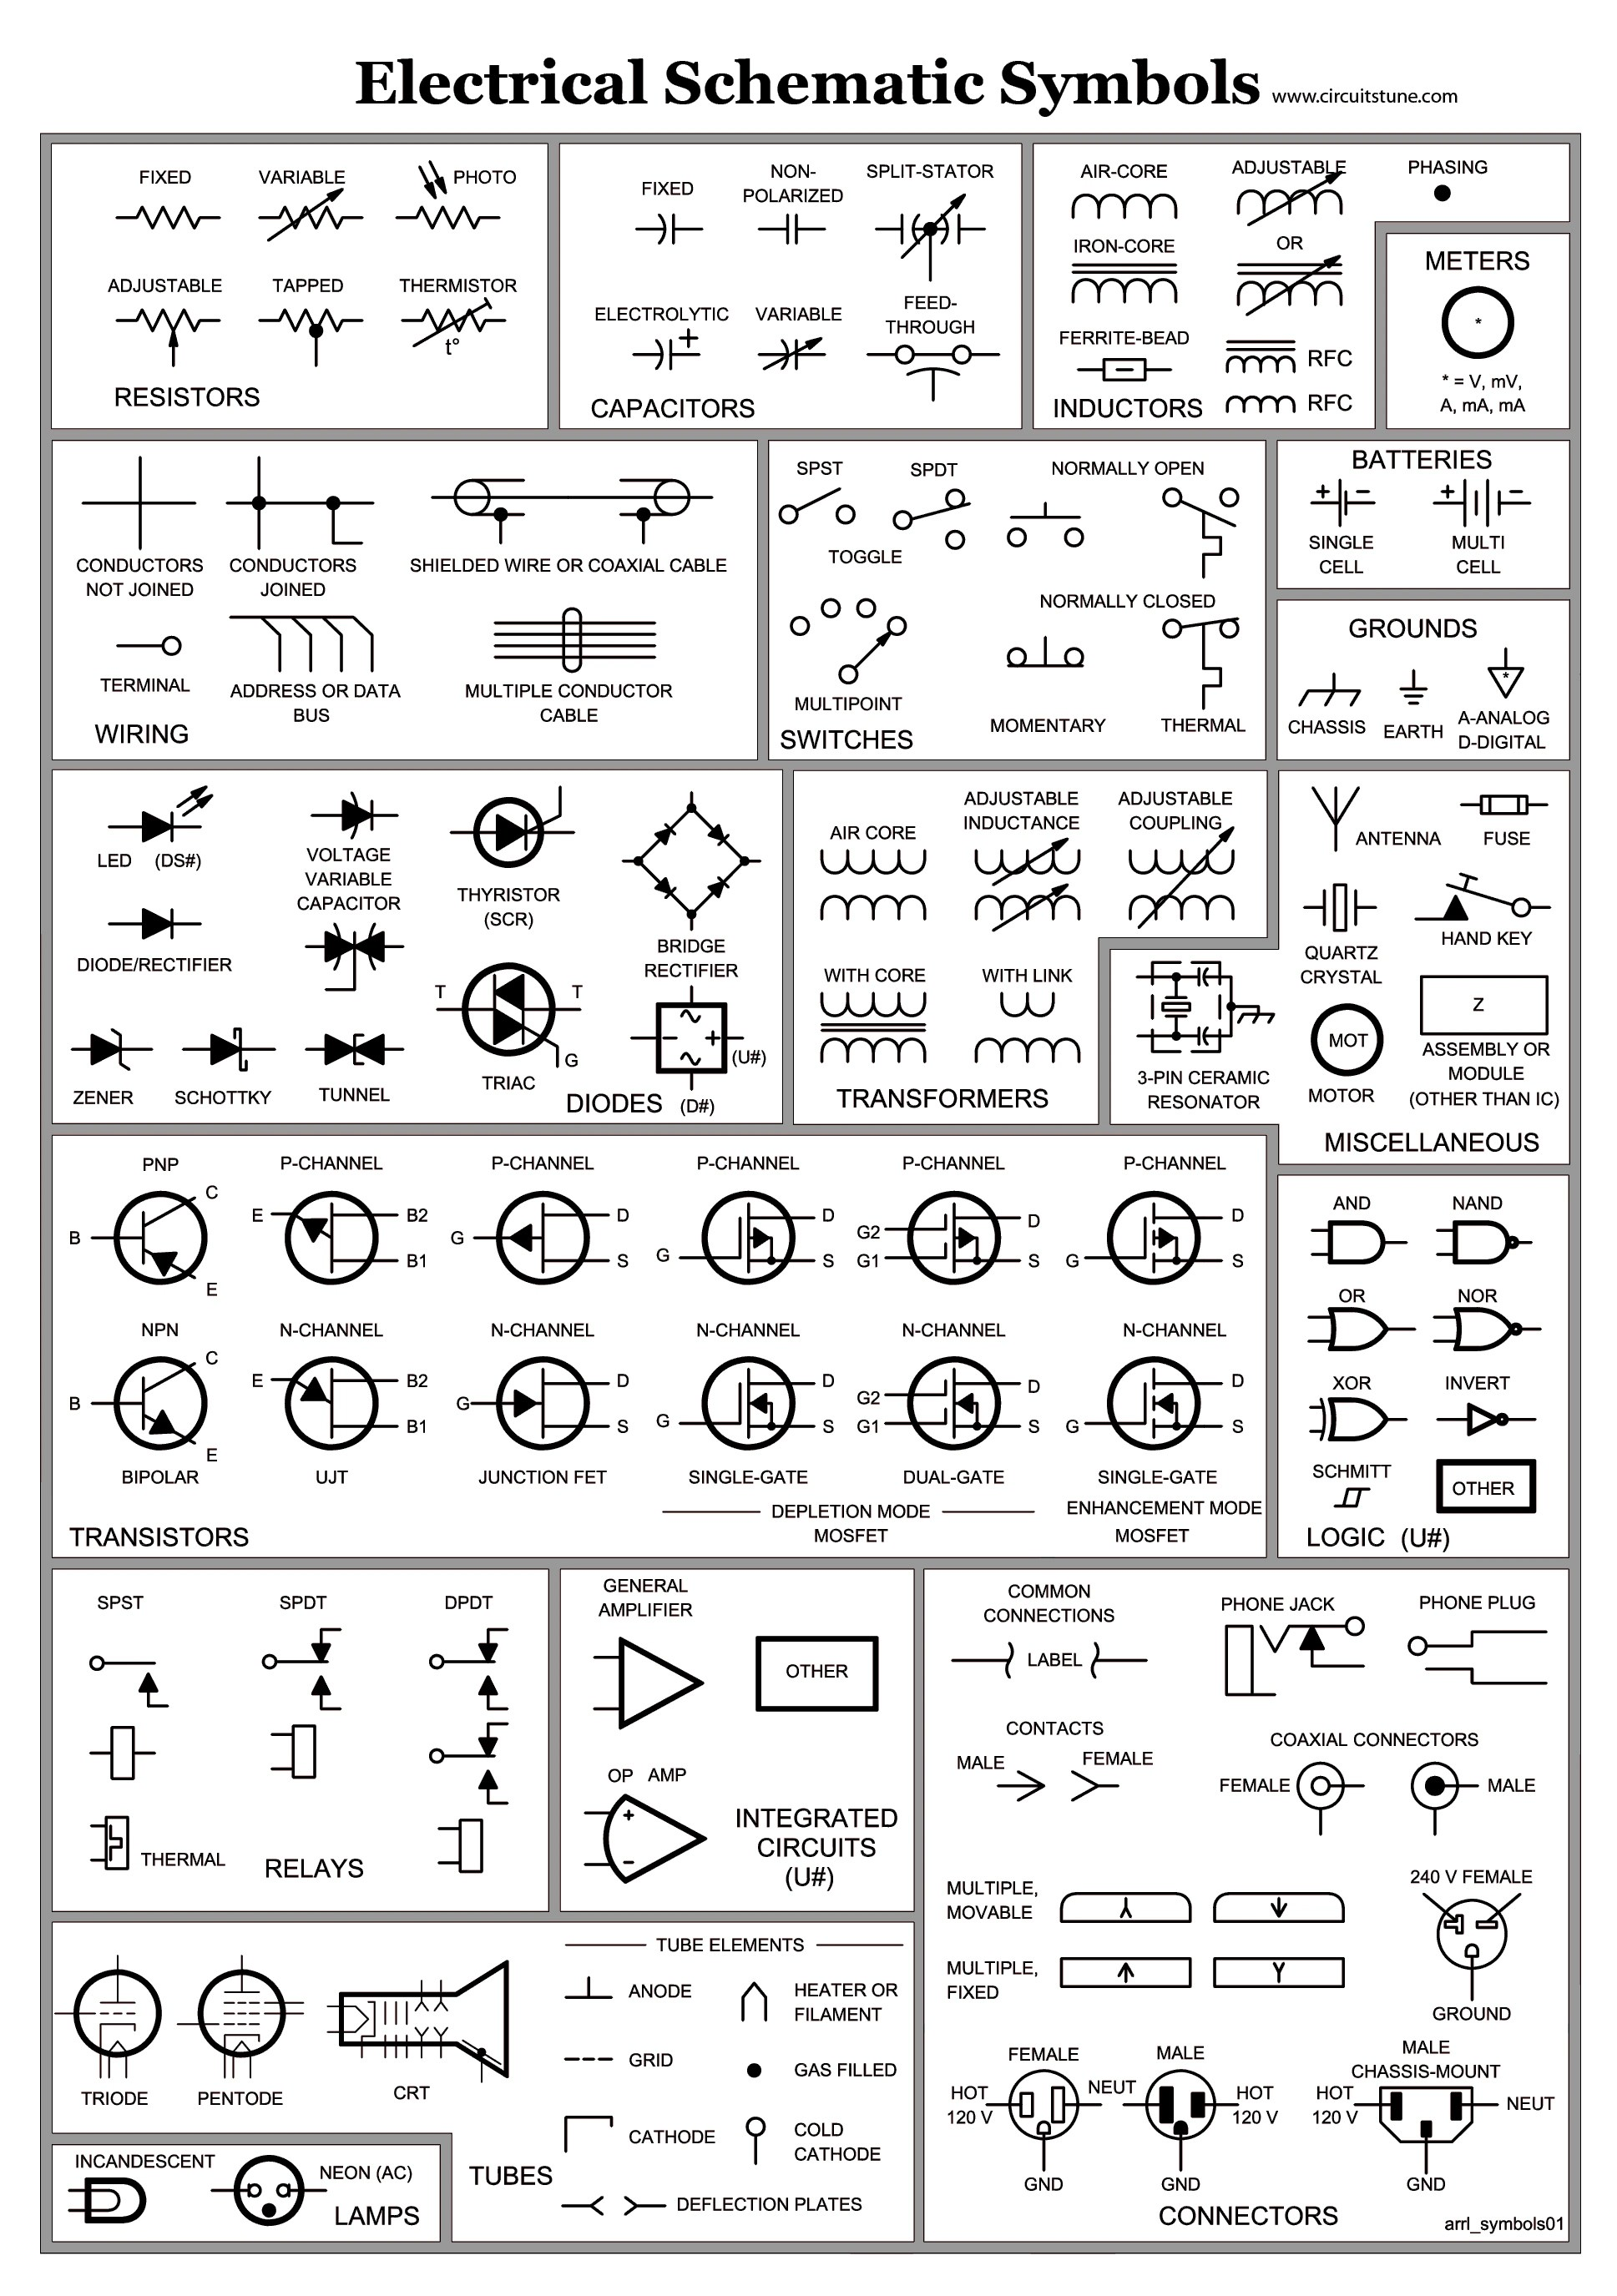 circuit schematic symbols bmet wiki fandom powered by wikia industrial schematic symbols switch wiring diagram symbols [ 1937 x 2751 Pixel ]